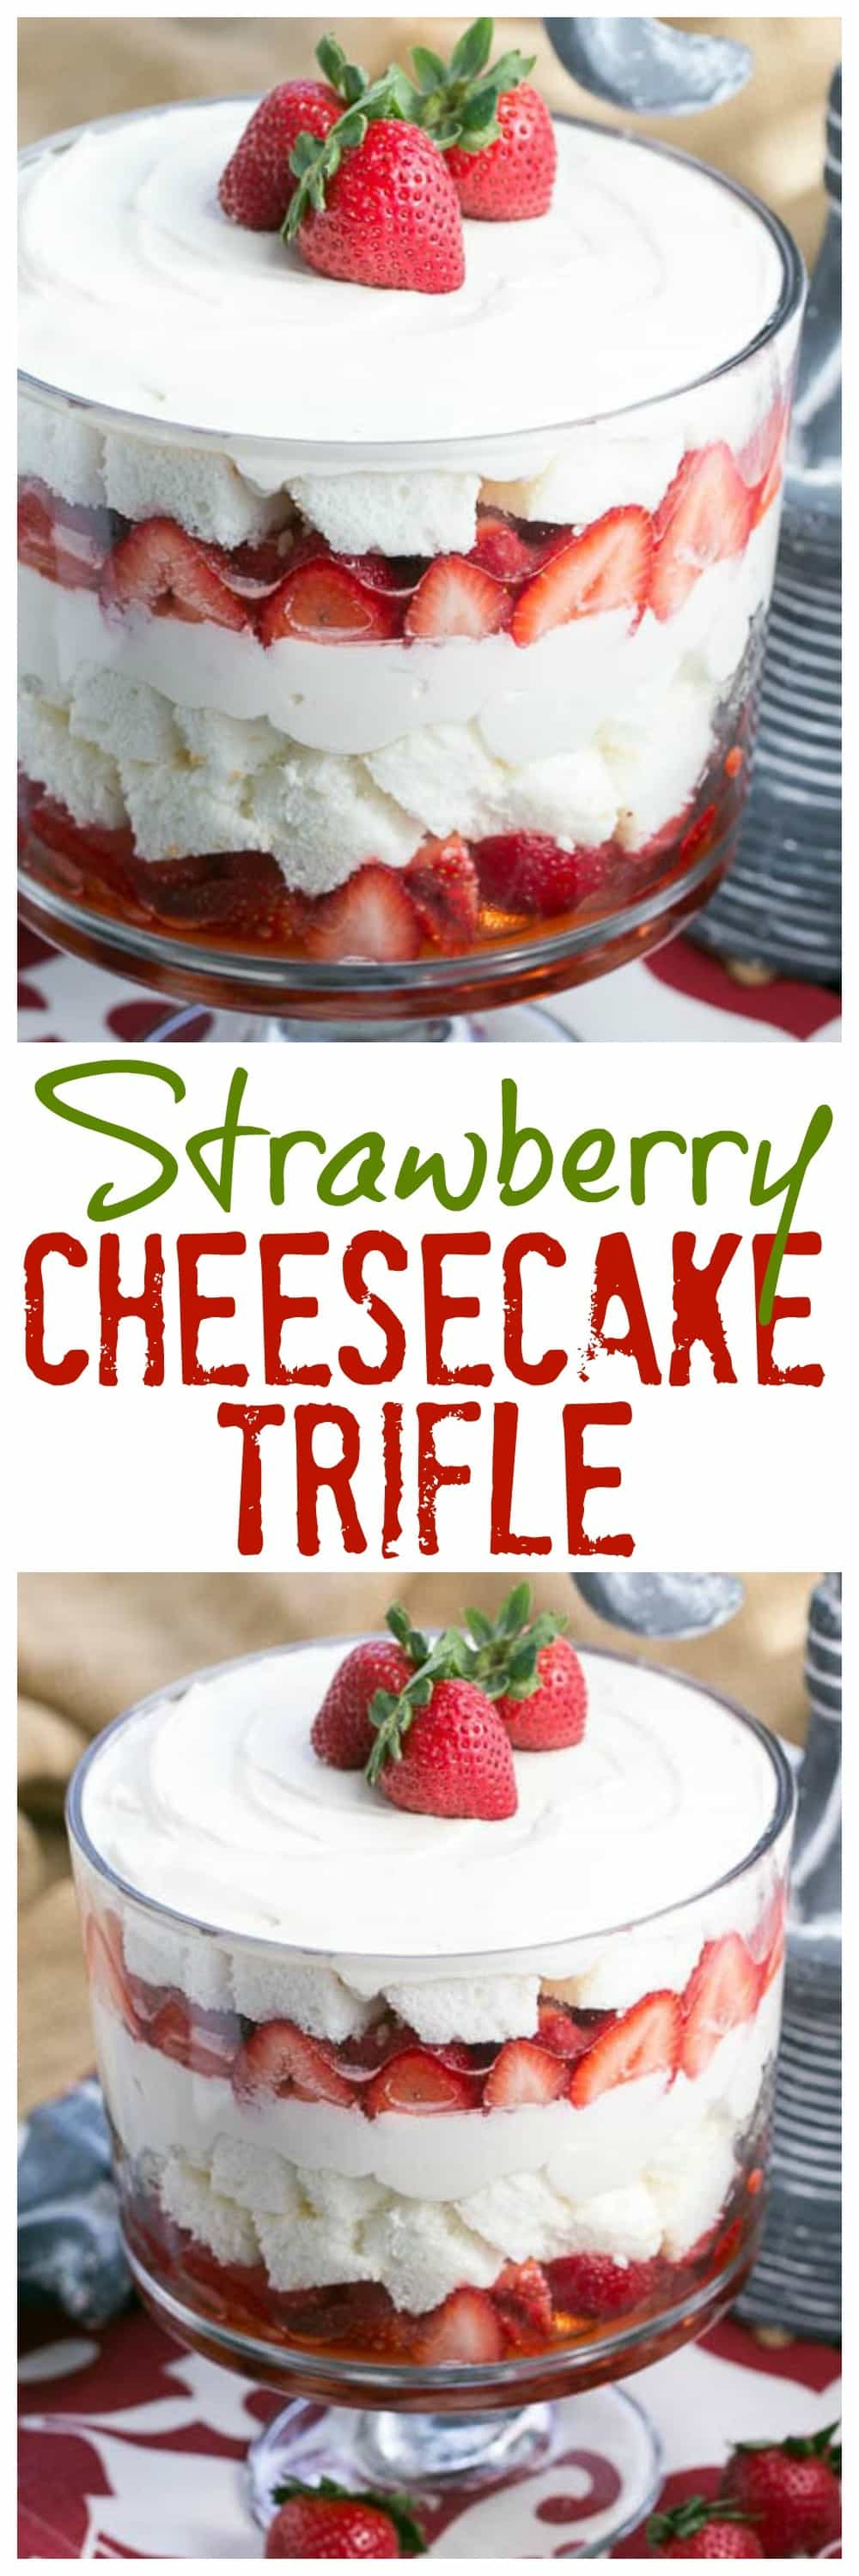 Strawberry Cheesecake Trifle - Layers of angel food cake, boozy berries and cream cheese filling make for a blissful berry dessert! #trifle #strawberry #cheesecake